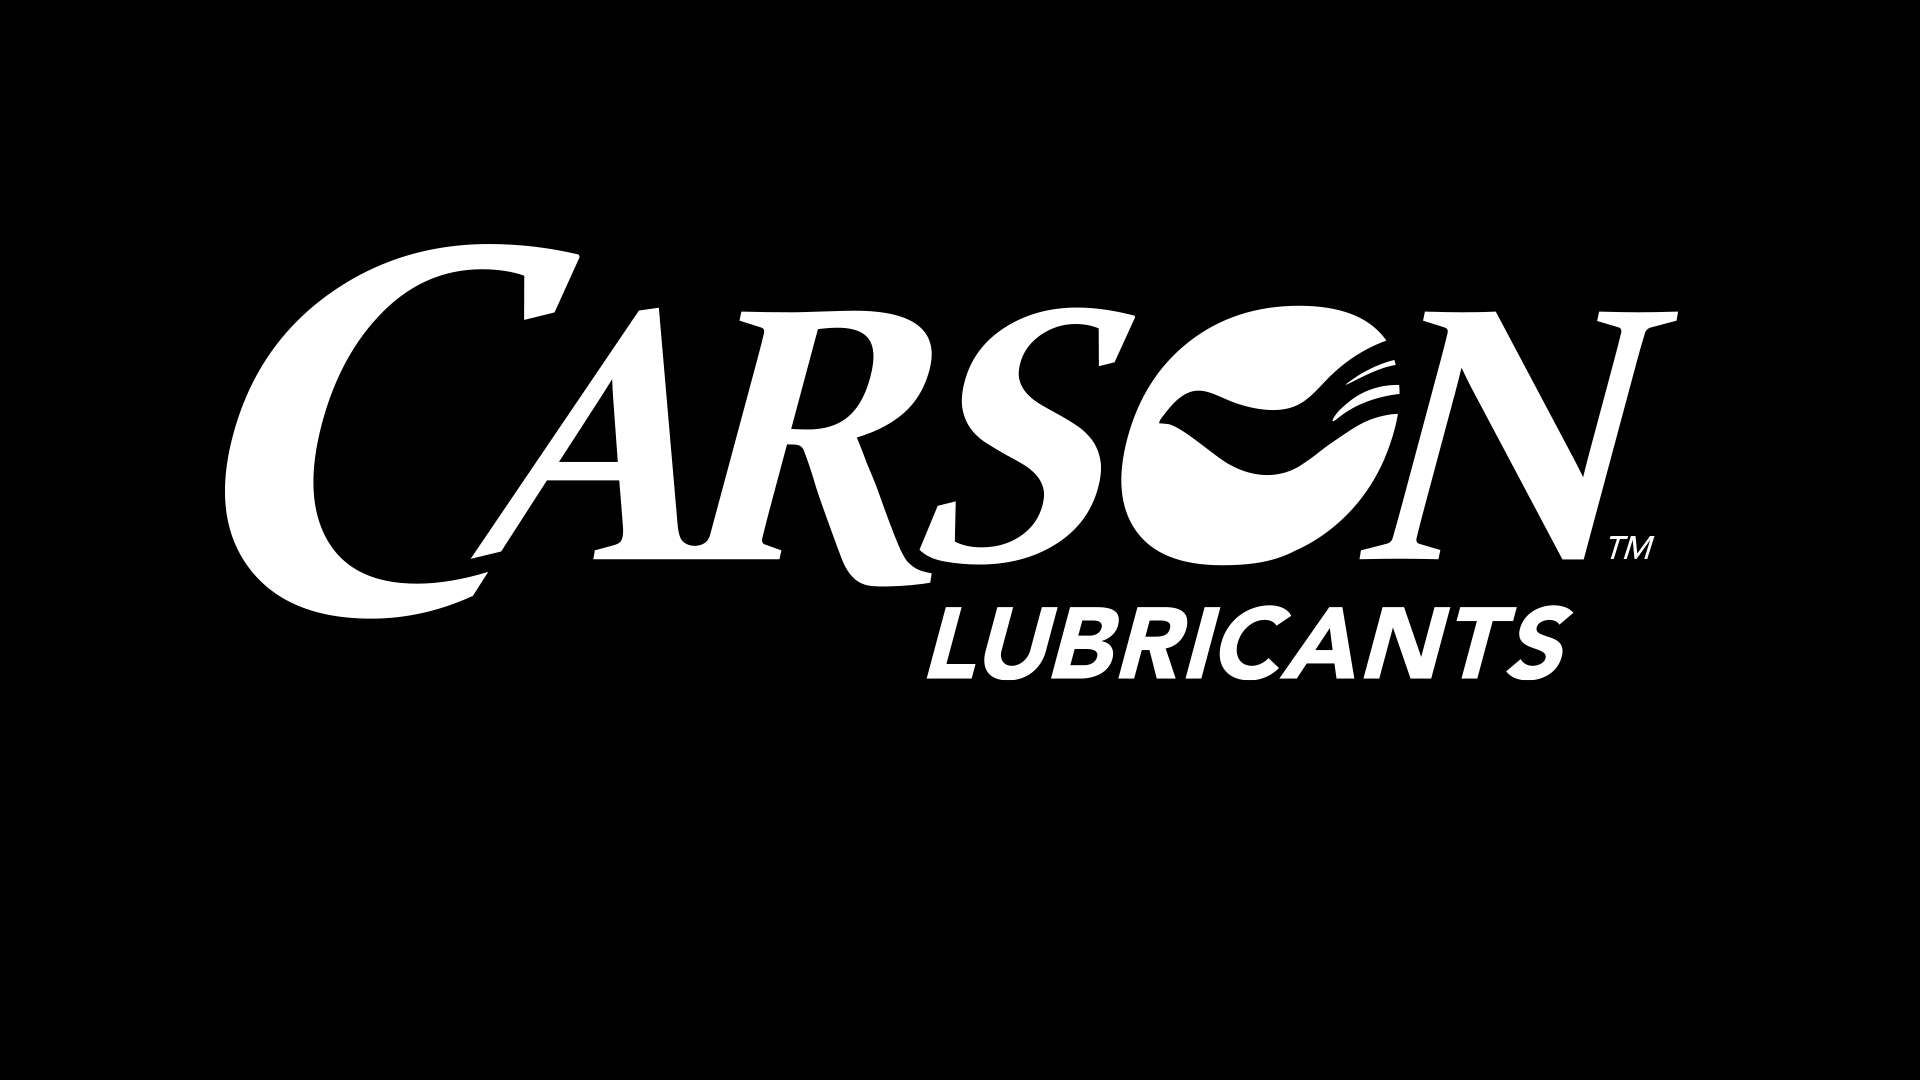 carson lubricants title frame